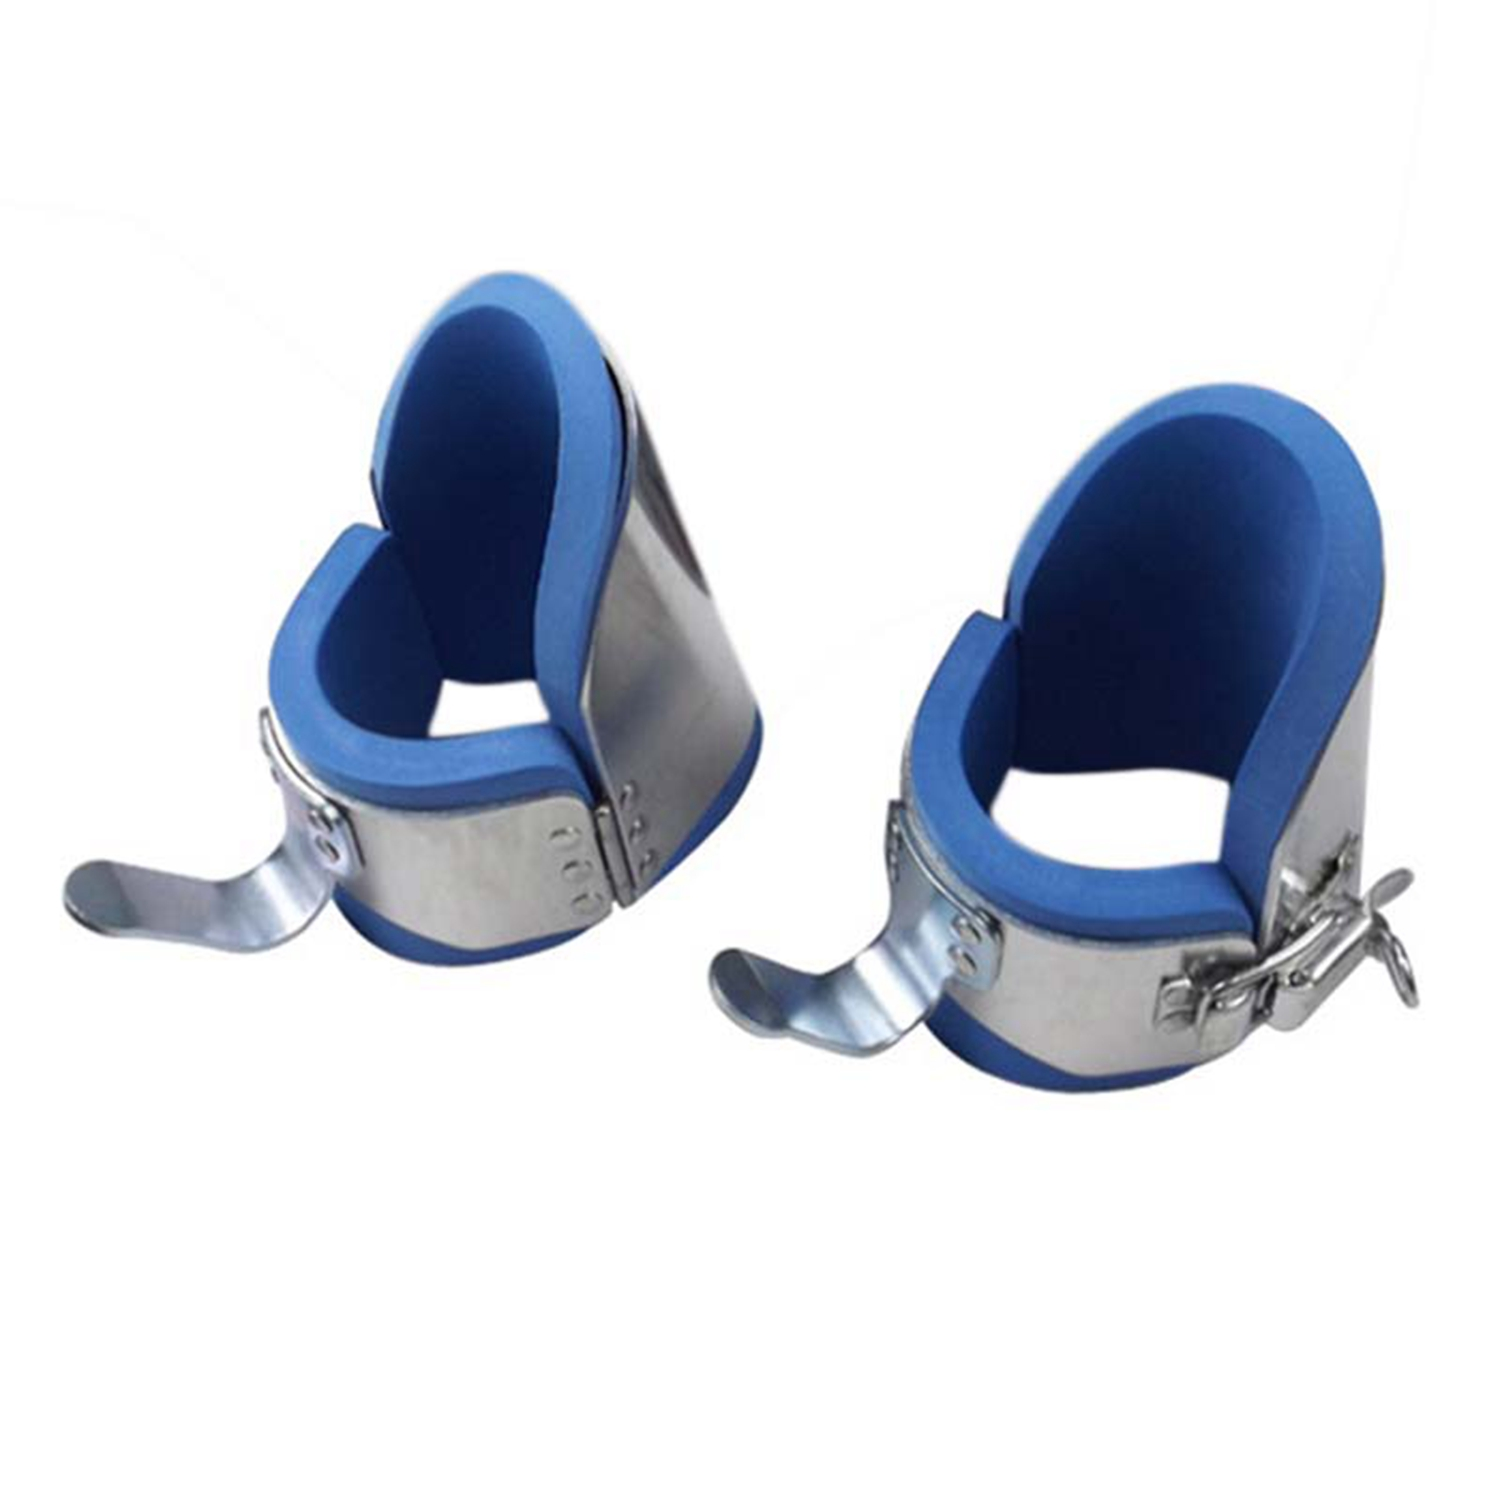 Abdominal Training Better Blood Circulation Bone Growth All In Sport Pioneer Hanging Upside Down Gravity Boots